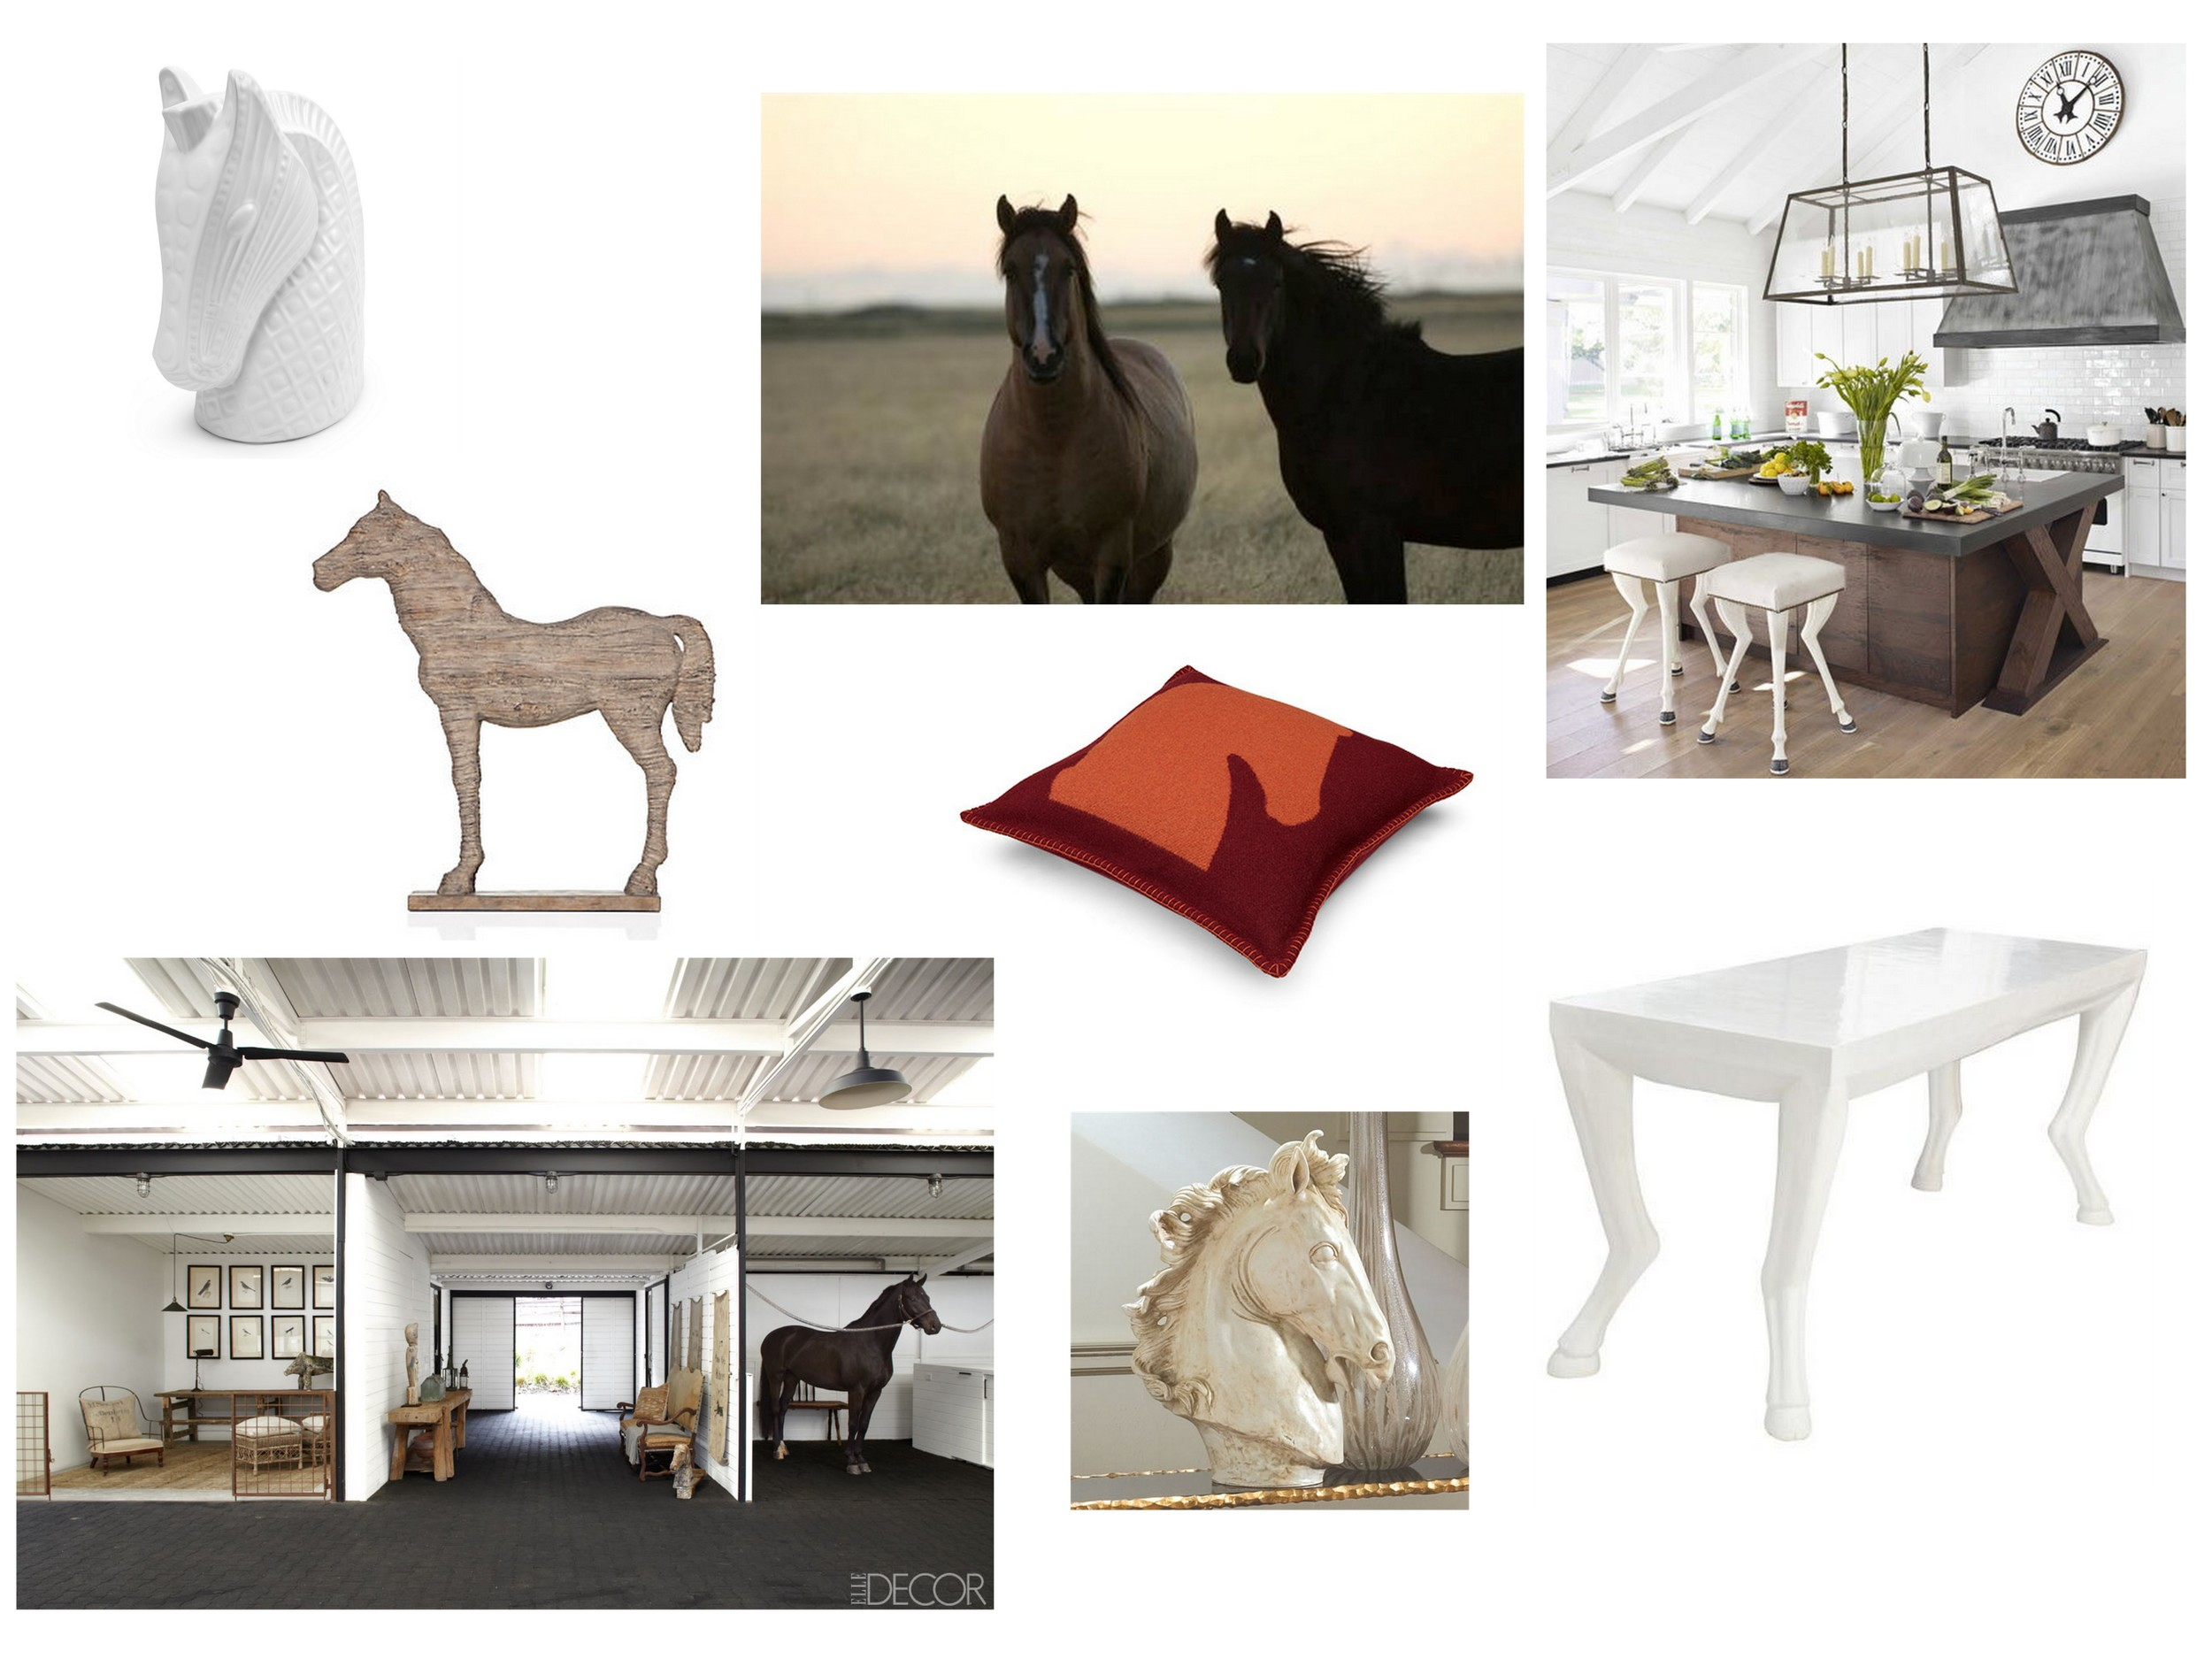 Clockwise from top:  Horse Patagonia  by Leftbank Art | Horse Leg Stools in  House Beautiful  | Samarcande  Pillow  by Hermes |  Faline Library Table  by Oly Studio | Marble Horse Head  Sculpture  by Global Views | Ellen DeGeneres and Portia de Rossi's Horse Barn in  Elle Decor  |  Faux Driftwood Horse  by Z Gallerie |  Ceramic Horse  by Jonathan Adler